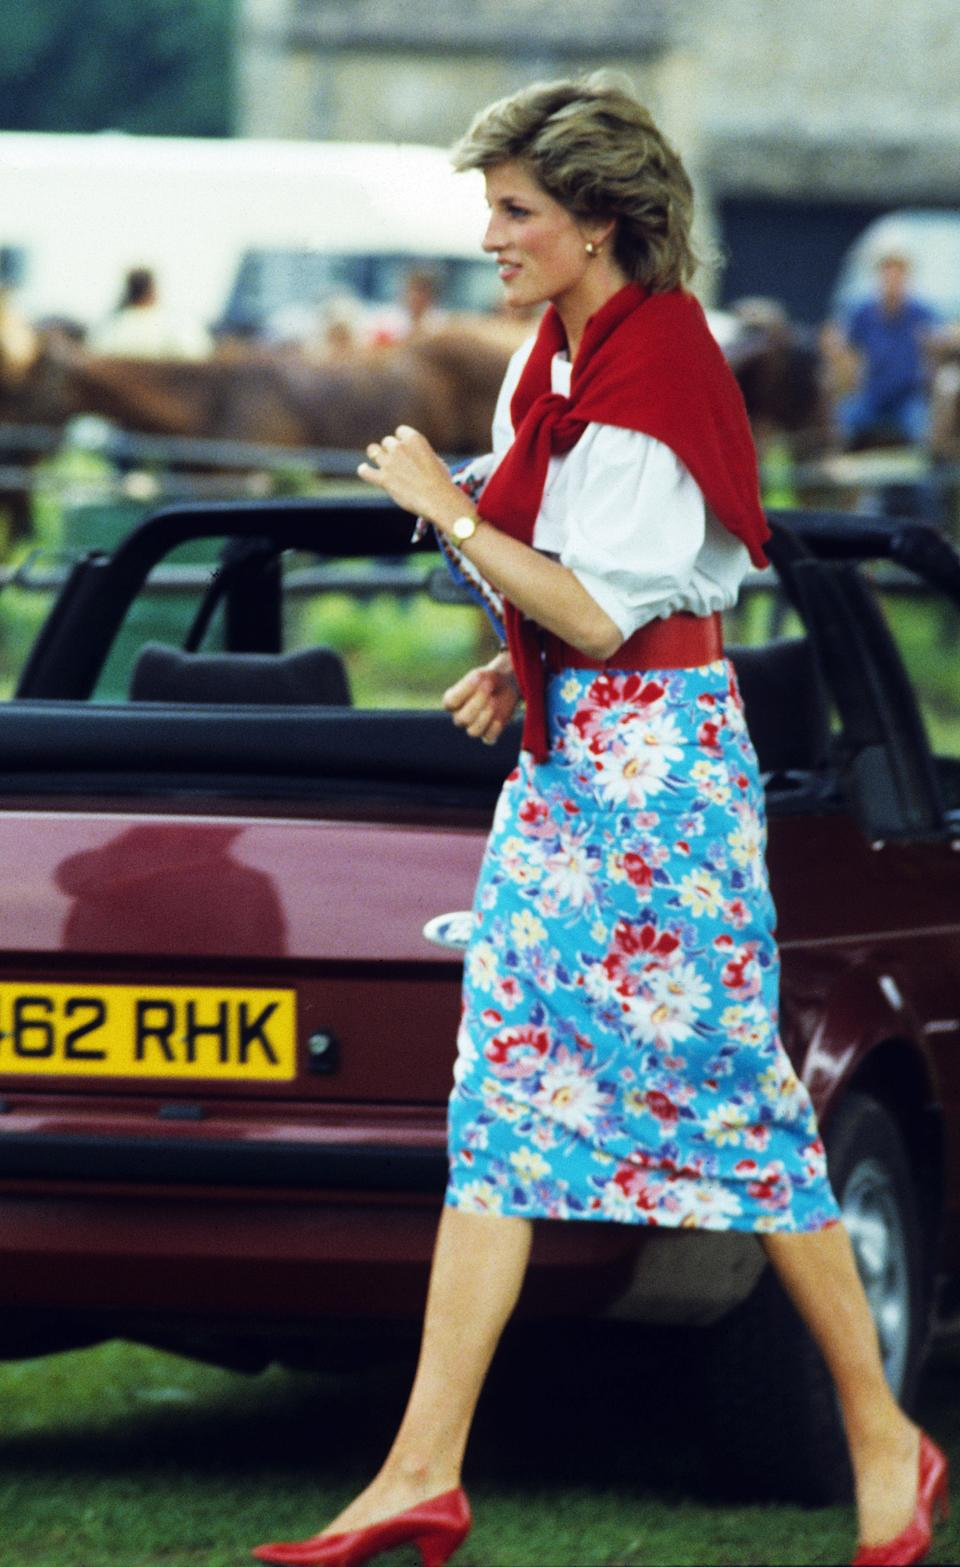 CIRENCESTER, ENGLAND - JUNE 30: Diana, Princess of Wales, wearing a blue floral patterned pencil skirt with a red belt, white blouse and red cardigan worn around her shoulders, attends a polo match at Cirencester Park Polo Club on June 30, 1985 in Cirencester, United Kingdom. (Photo by Anwar Hussein/WireImage)